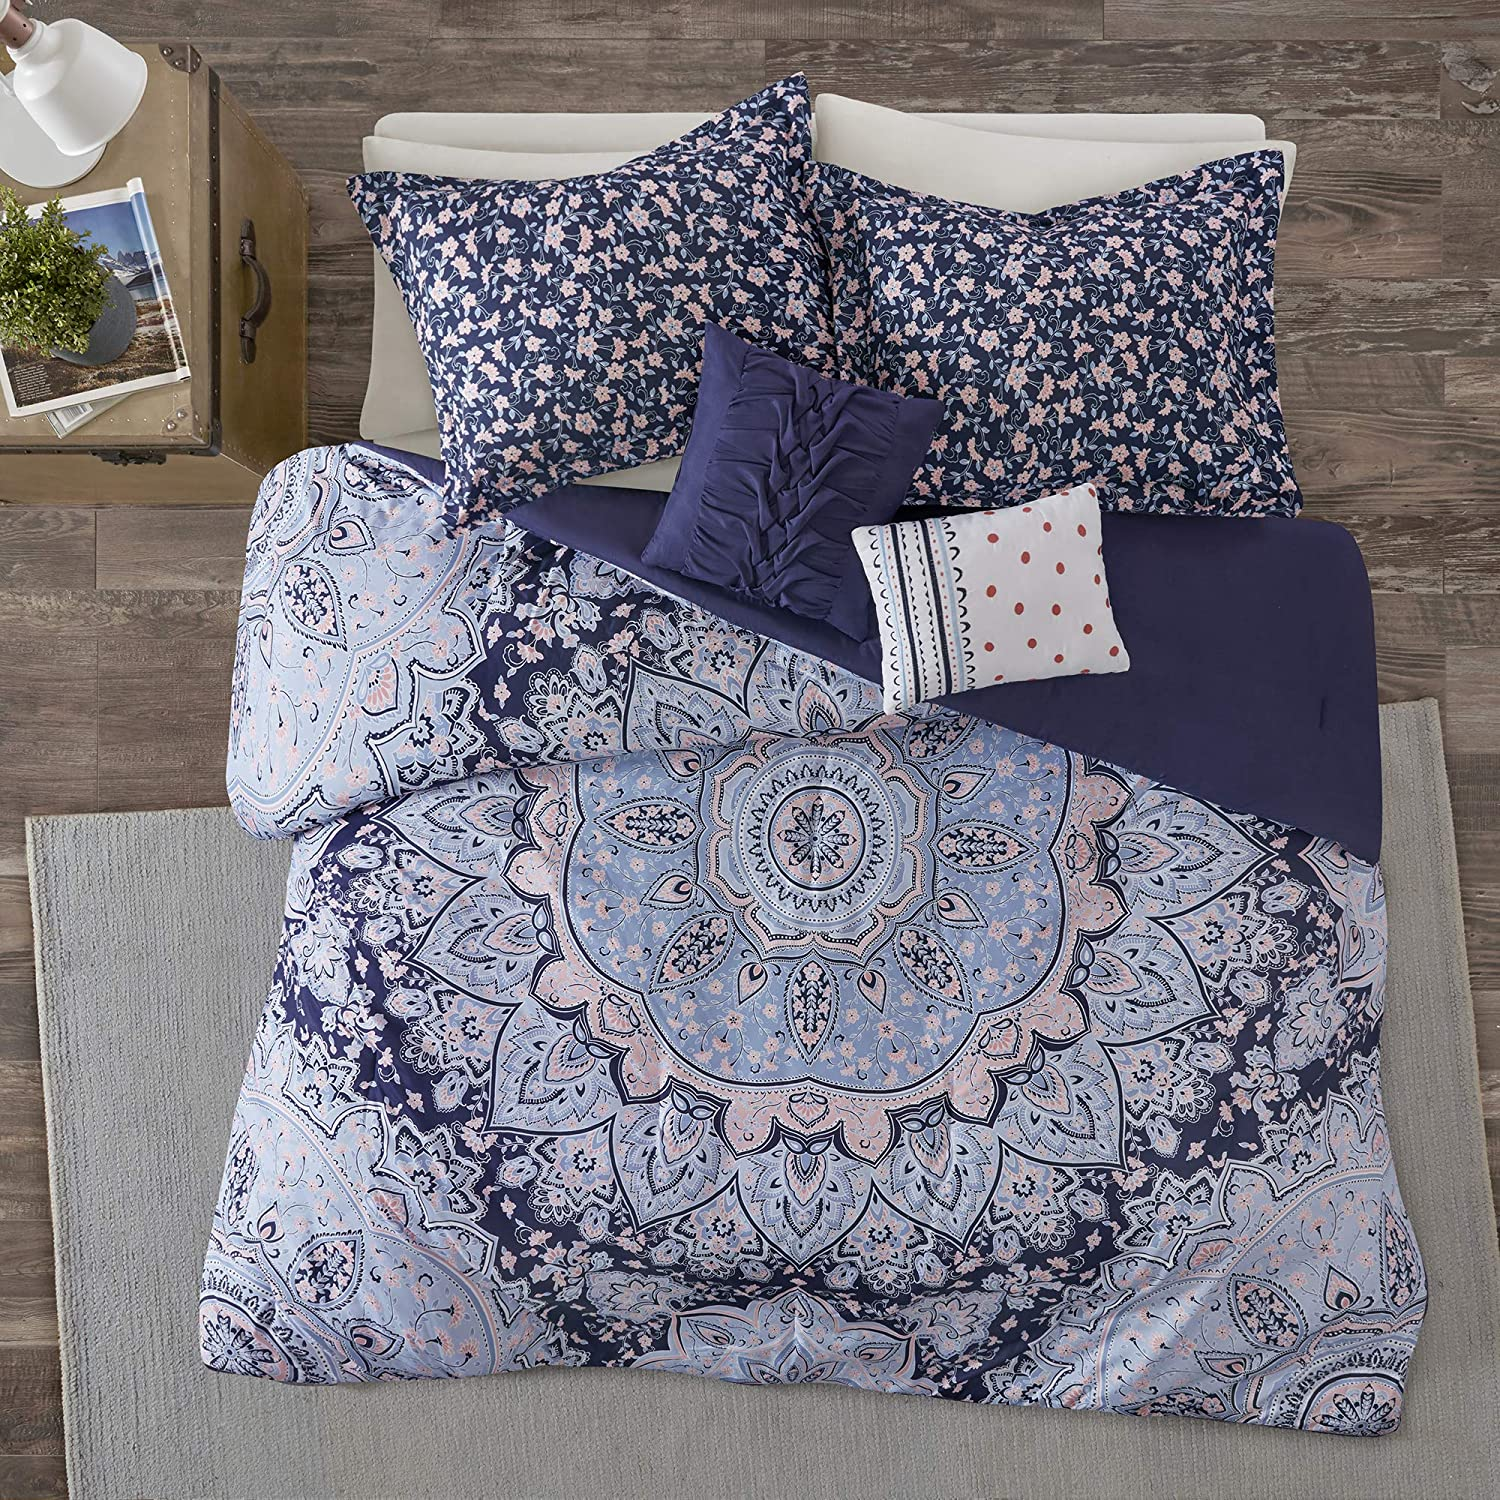 Intelligent Design Odette 4 Pieces Boho Printed Solid Microfiber Comforter Set Bedding, Twin/Twin XL, Blue